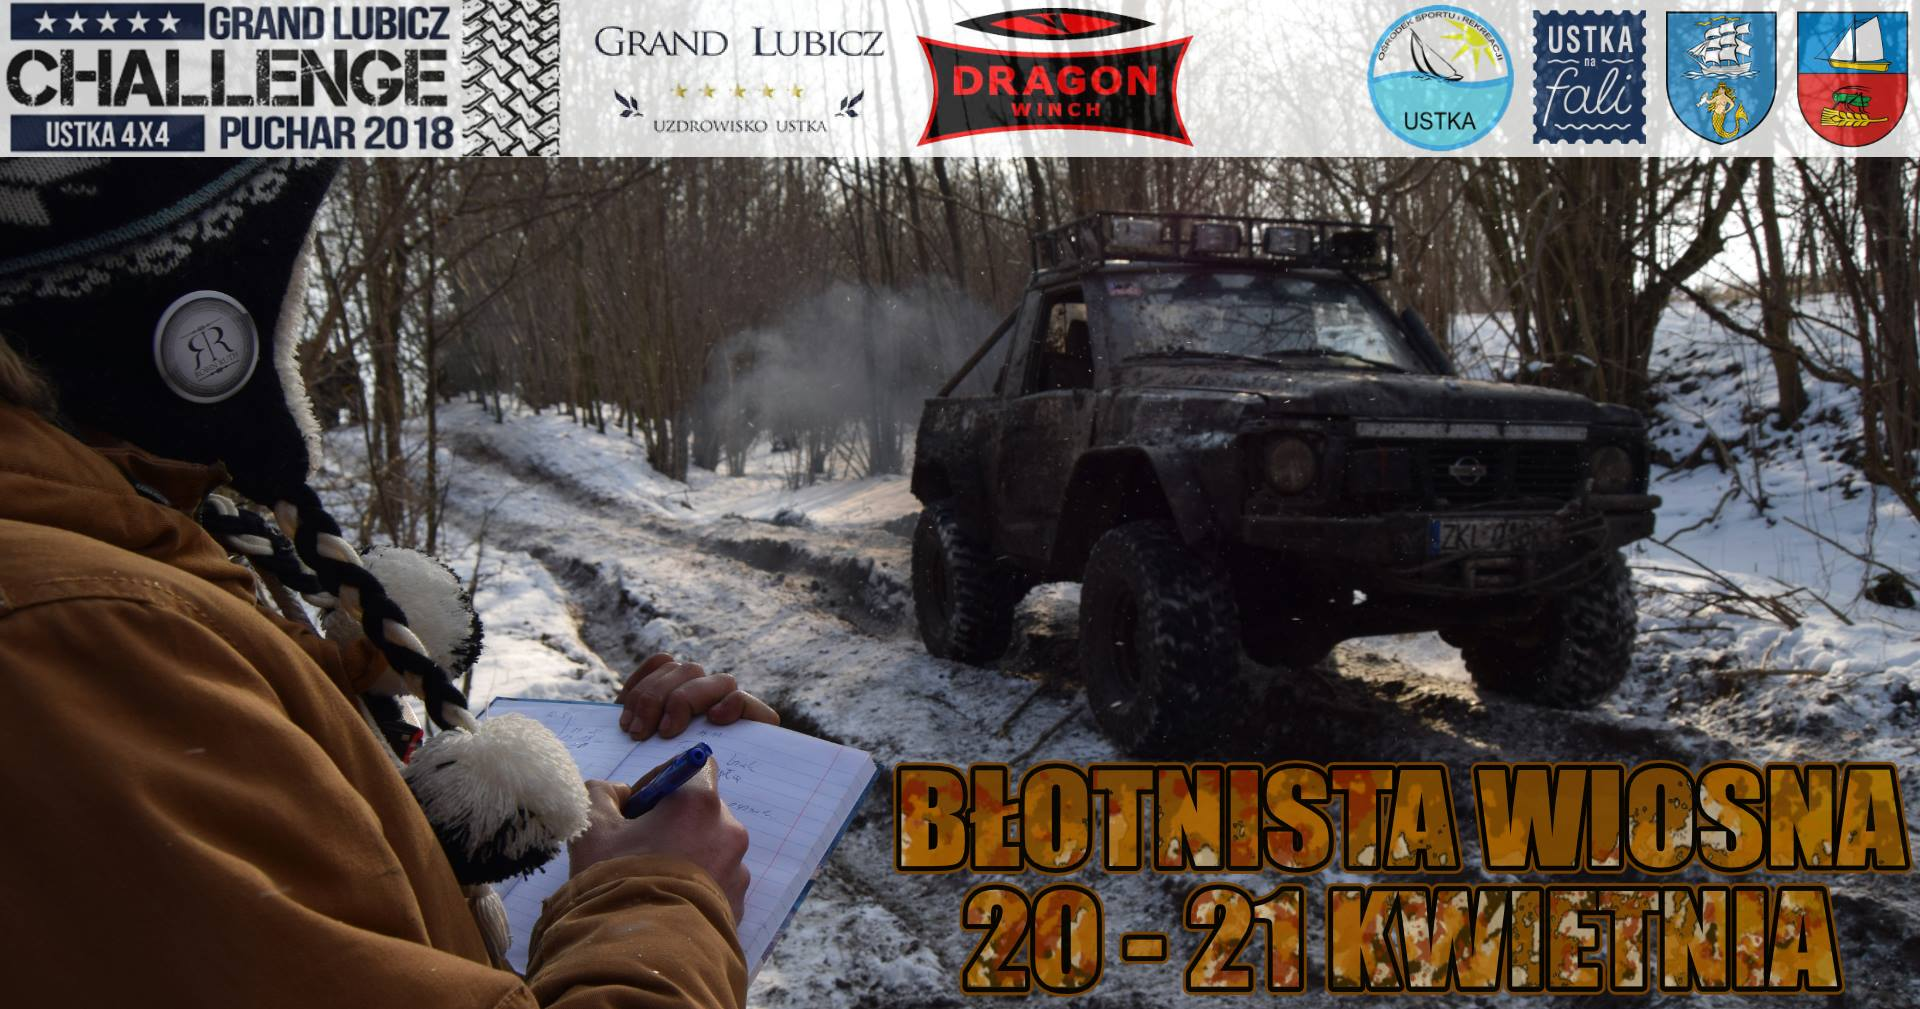 Ustka 4x4 offroad z DRAGON WINCH!